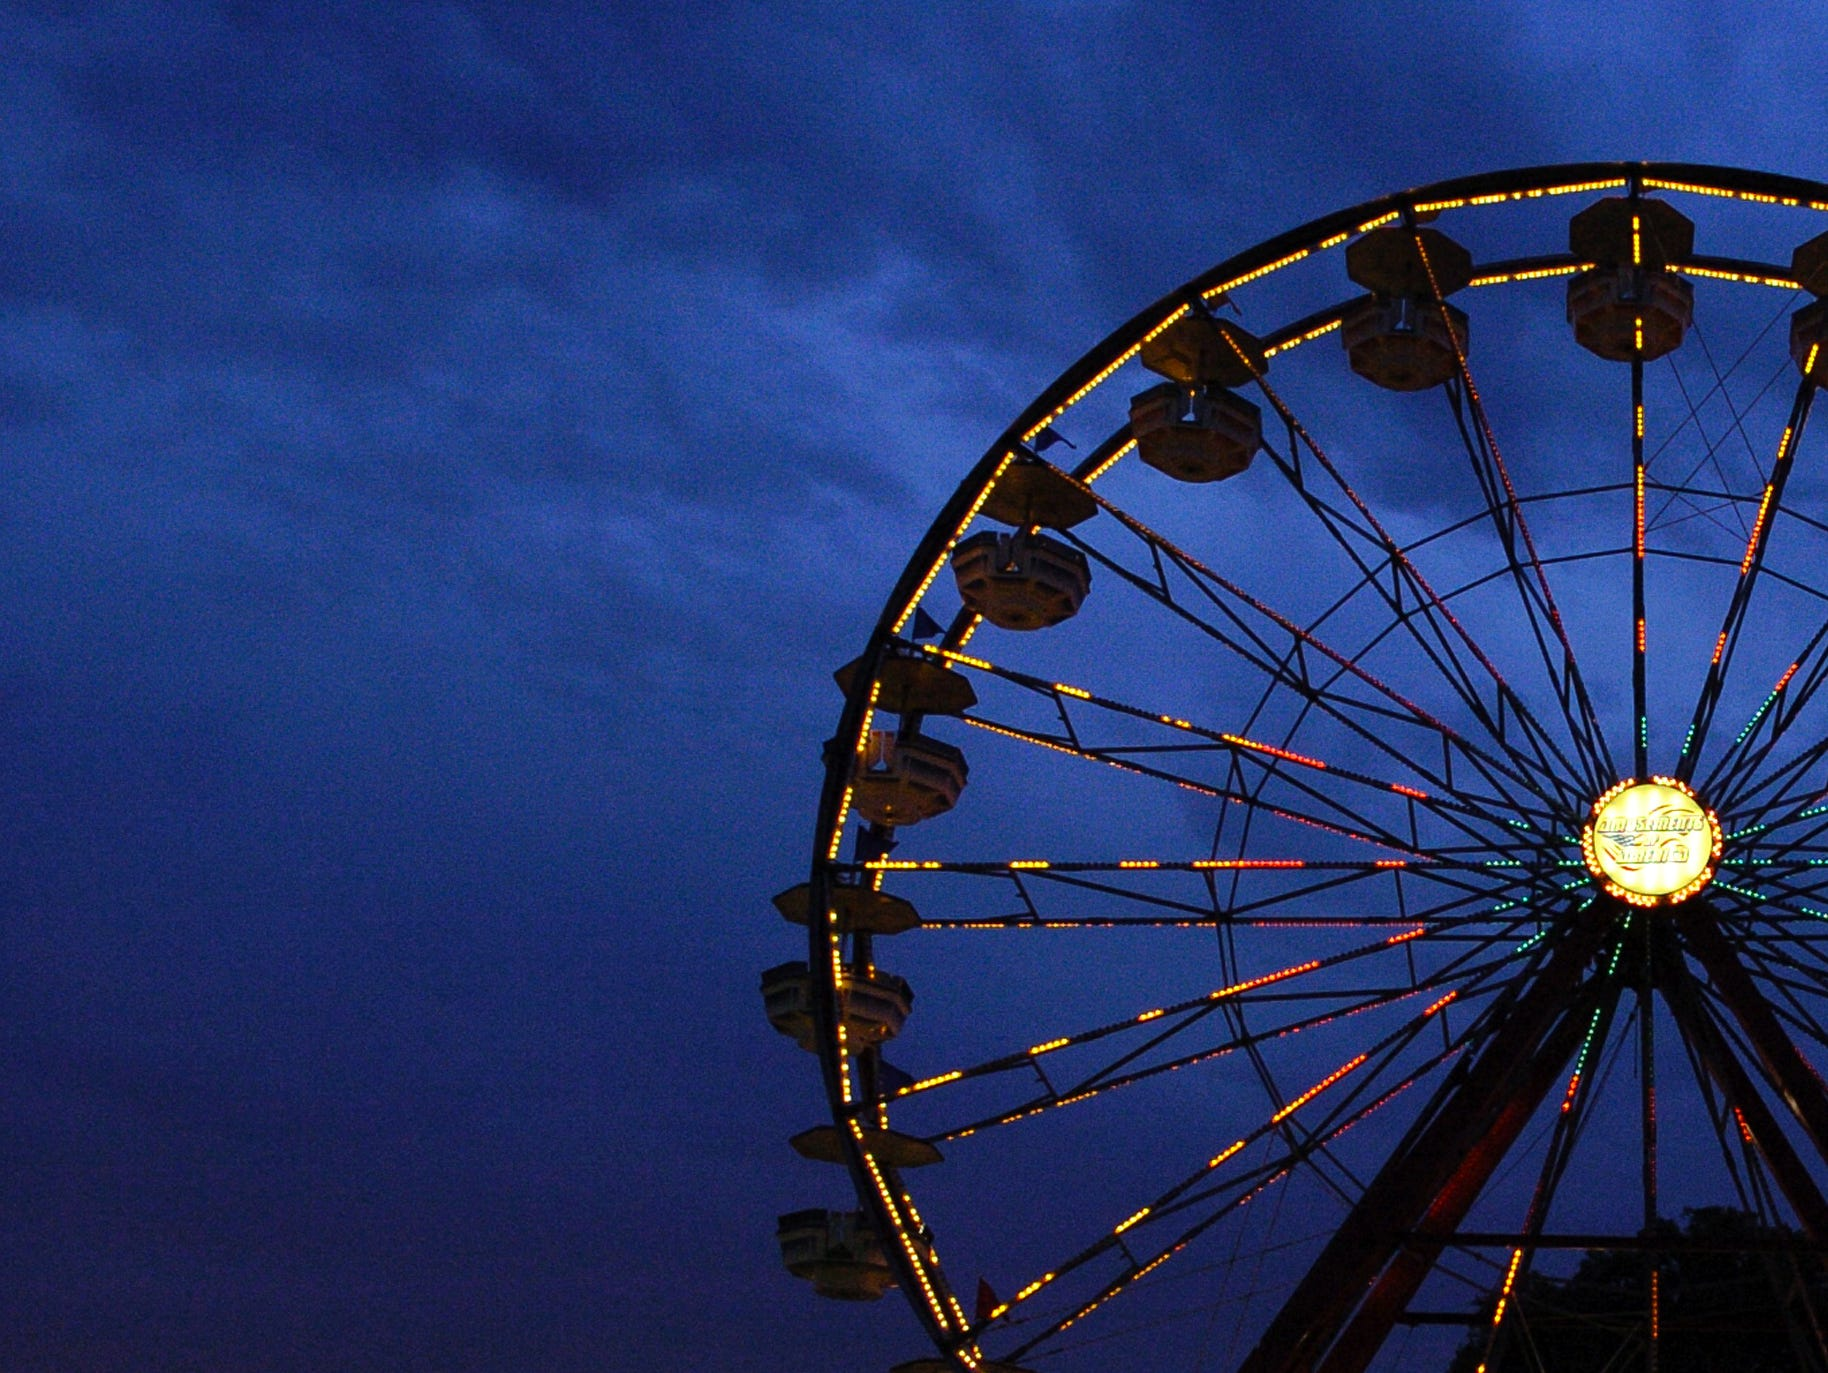 There is always something going on the state fair Thrillway. The rides open at noon on weekends and 4p.m. weekdays.